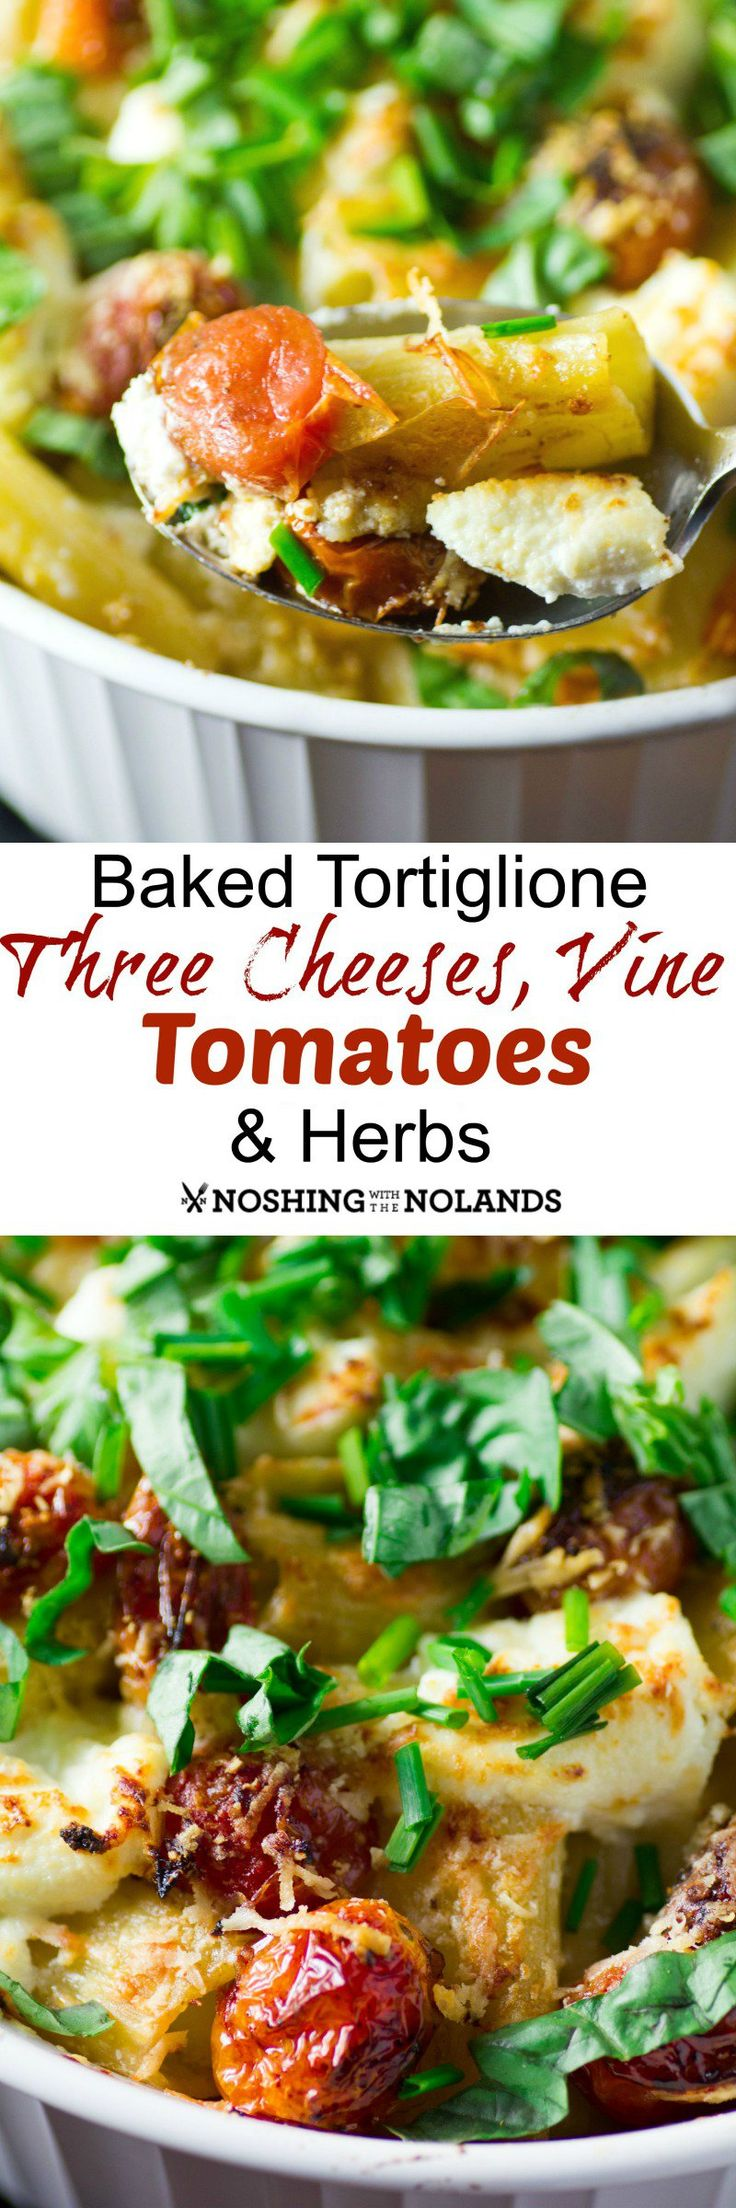 ... Herbs by Noshing With The Nolands, perfect spring/summer pasta with